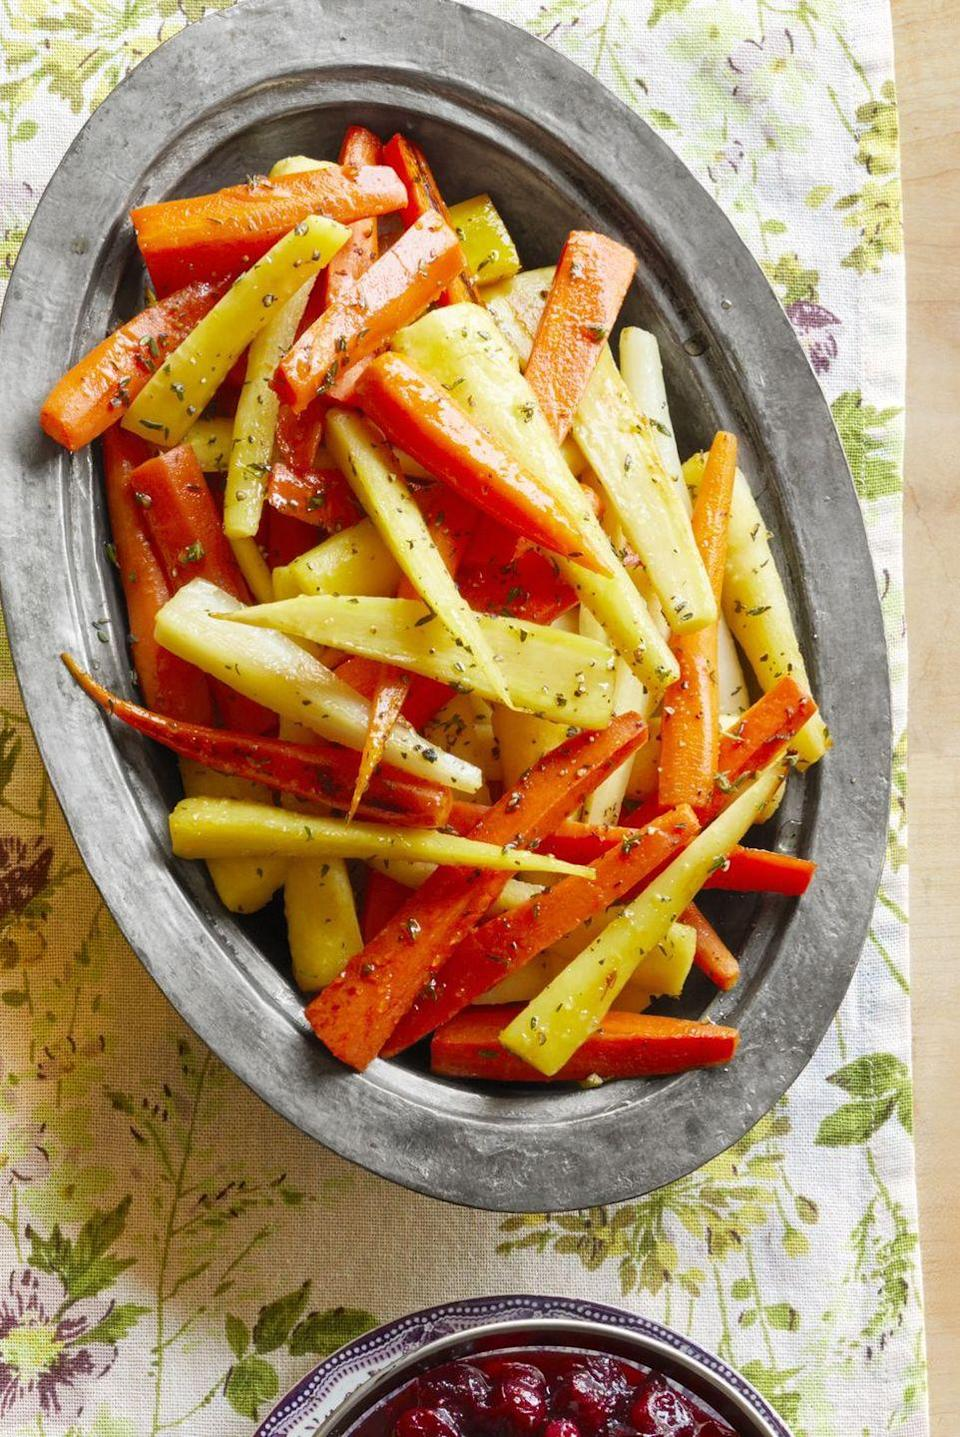 """<p>Stick to the basics with this easy root veggie dish. It's flavored with fresh thyme and honey.</p><p><strong><a href=""""https://www.thepioneerwoman.com/food-cooking/recipes/a33248884/honey-glazed-carrots-and-parsnips-recipe/"""" rel=""""nofollow noopener"""" target=""""_blank"""" data-ylk=""""slk:Get the recipe."""" class=""""link rapid-noclick-resp"""">Get the recipe.</a></strong></p><p><a class=""""link rapid-noclick-resp"""" href=""""https://go.redirectingat.com?id=74968X1596630&url=https%3A%2F%2Fwww.walmart.com%2Fsearch%2F%3Fquery%3Dvegetable%2Bpeelers&sref=https%3A%2F%2Fwww.thepioneerwoman.com%2Ffood-cooking%2Fmeals-menus%2Fg35585877%2Feaster-recipes%2F"""" rel=""""nofollow noopener"""" target=""""_blank"""" data-ylk=""""slk:SHOP VEGETABLE PEELERS"""">SHOP VEGETABLE PEELERS</a></p>"""